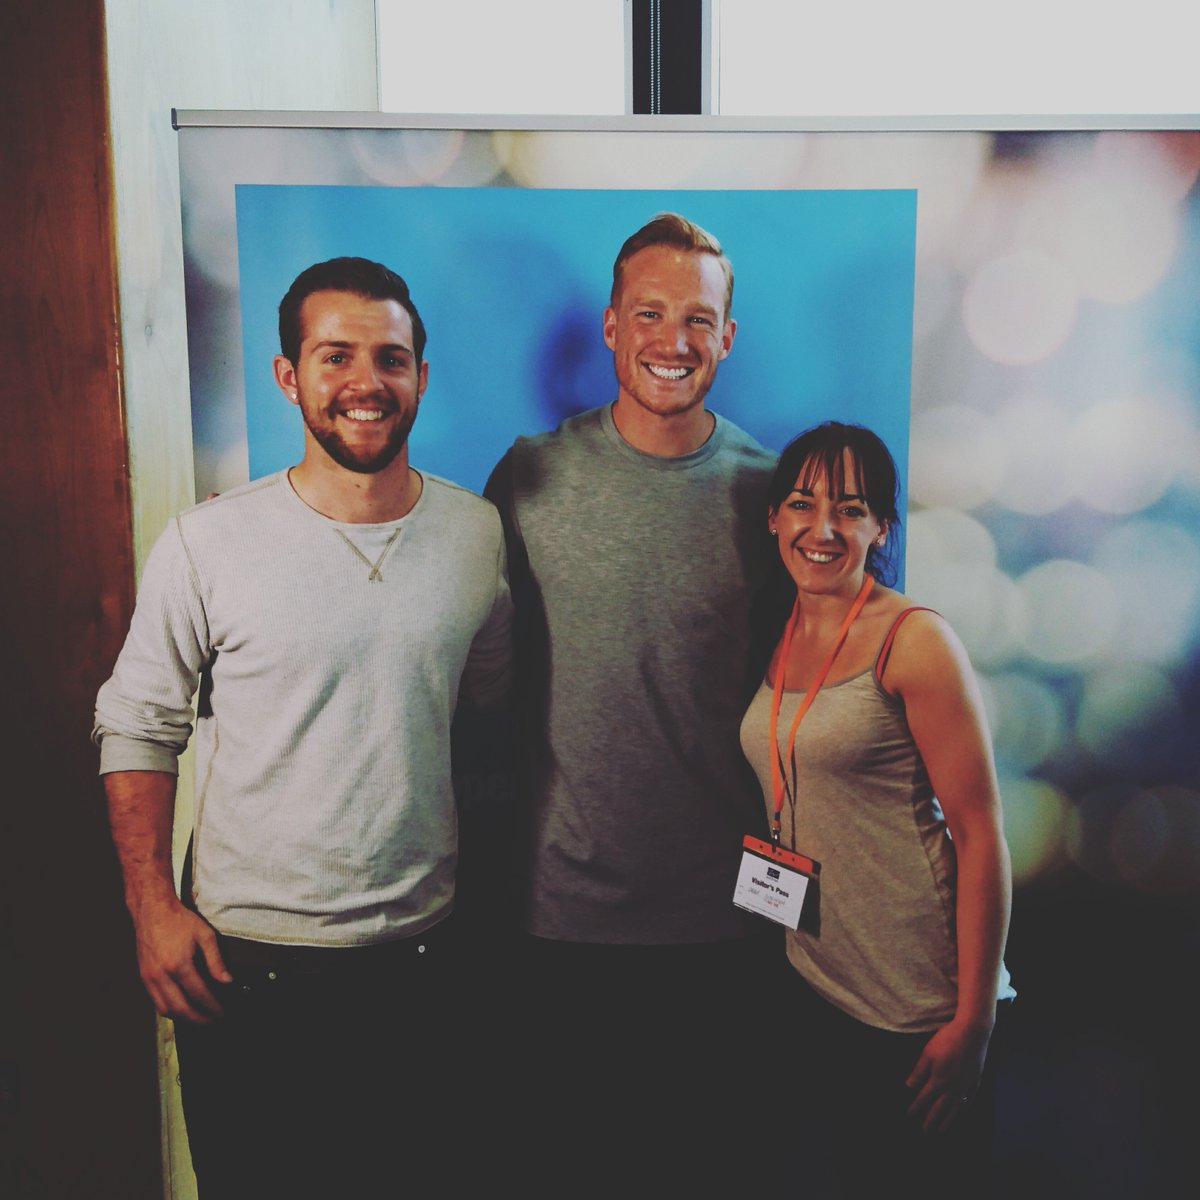 """Our video producer Abi met Greg Rutherford prior to this evening's <a href=""""http://twitter.com/search?q=CityGames2016"""" target=""""_blank"""" rel=""""nofollow"""">#CityGames2016</a>! <a href=""""http://twitter.com/search?q=manchester"""" target=""""_blank"""" rel=""""nofollow"""">#manchester</a> <a href=""""http://www.twitter.com/great_run"""" target=""""_blank"""" rel=""""nofollow"""">@great_run</a>"""